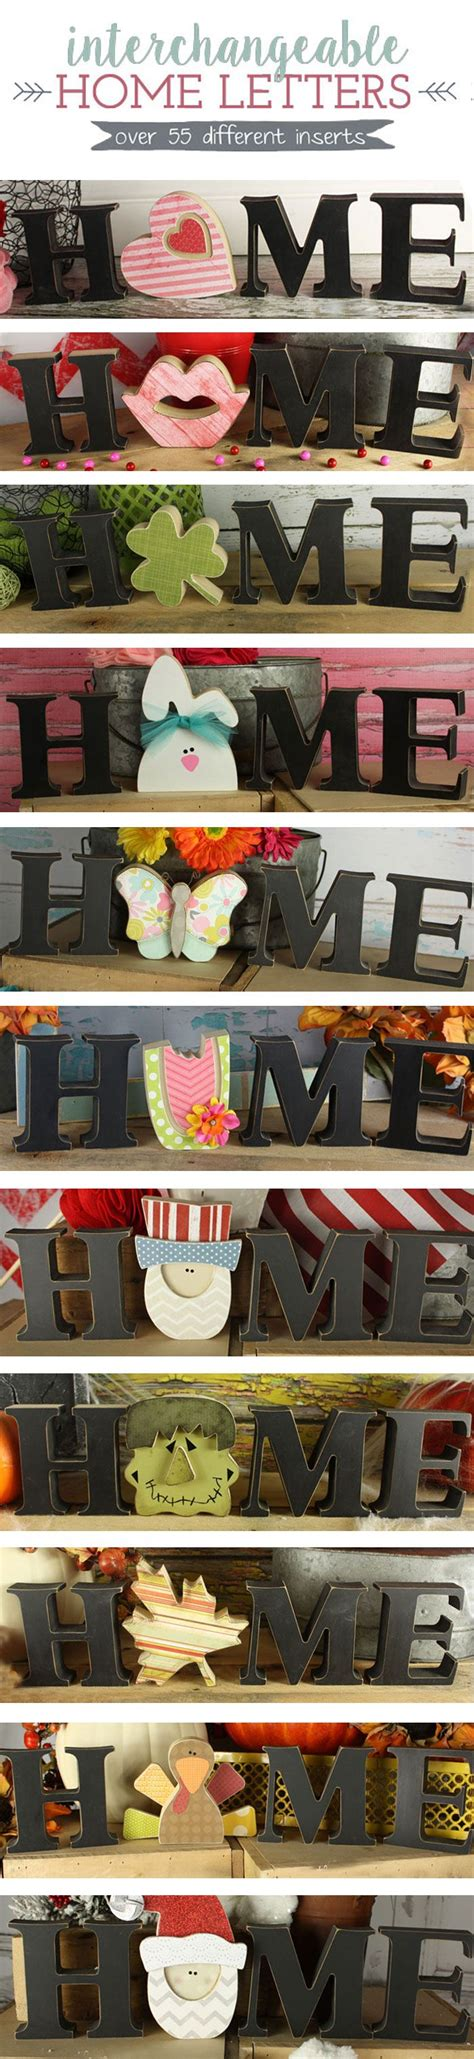 Home Letters interchangeable home letters 55 different inserts